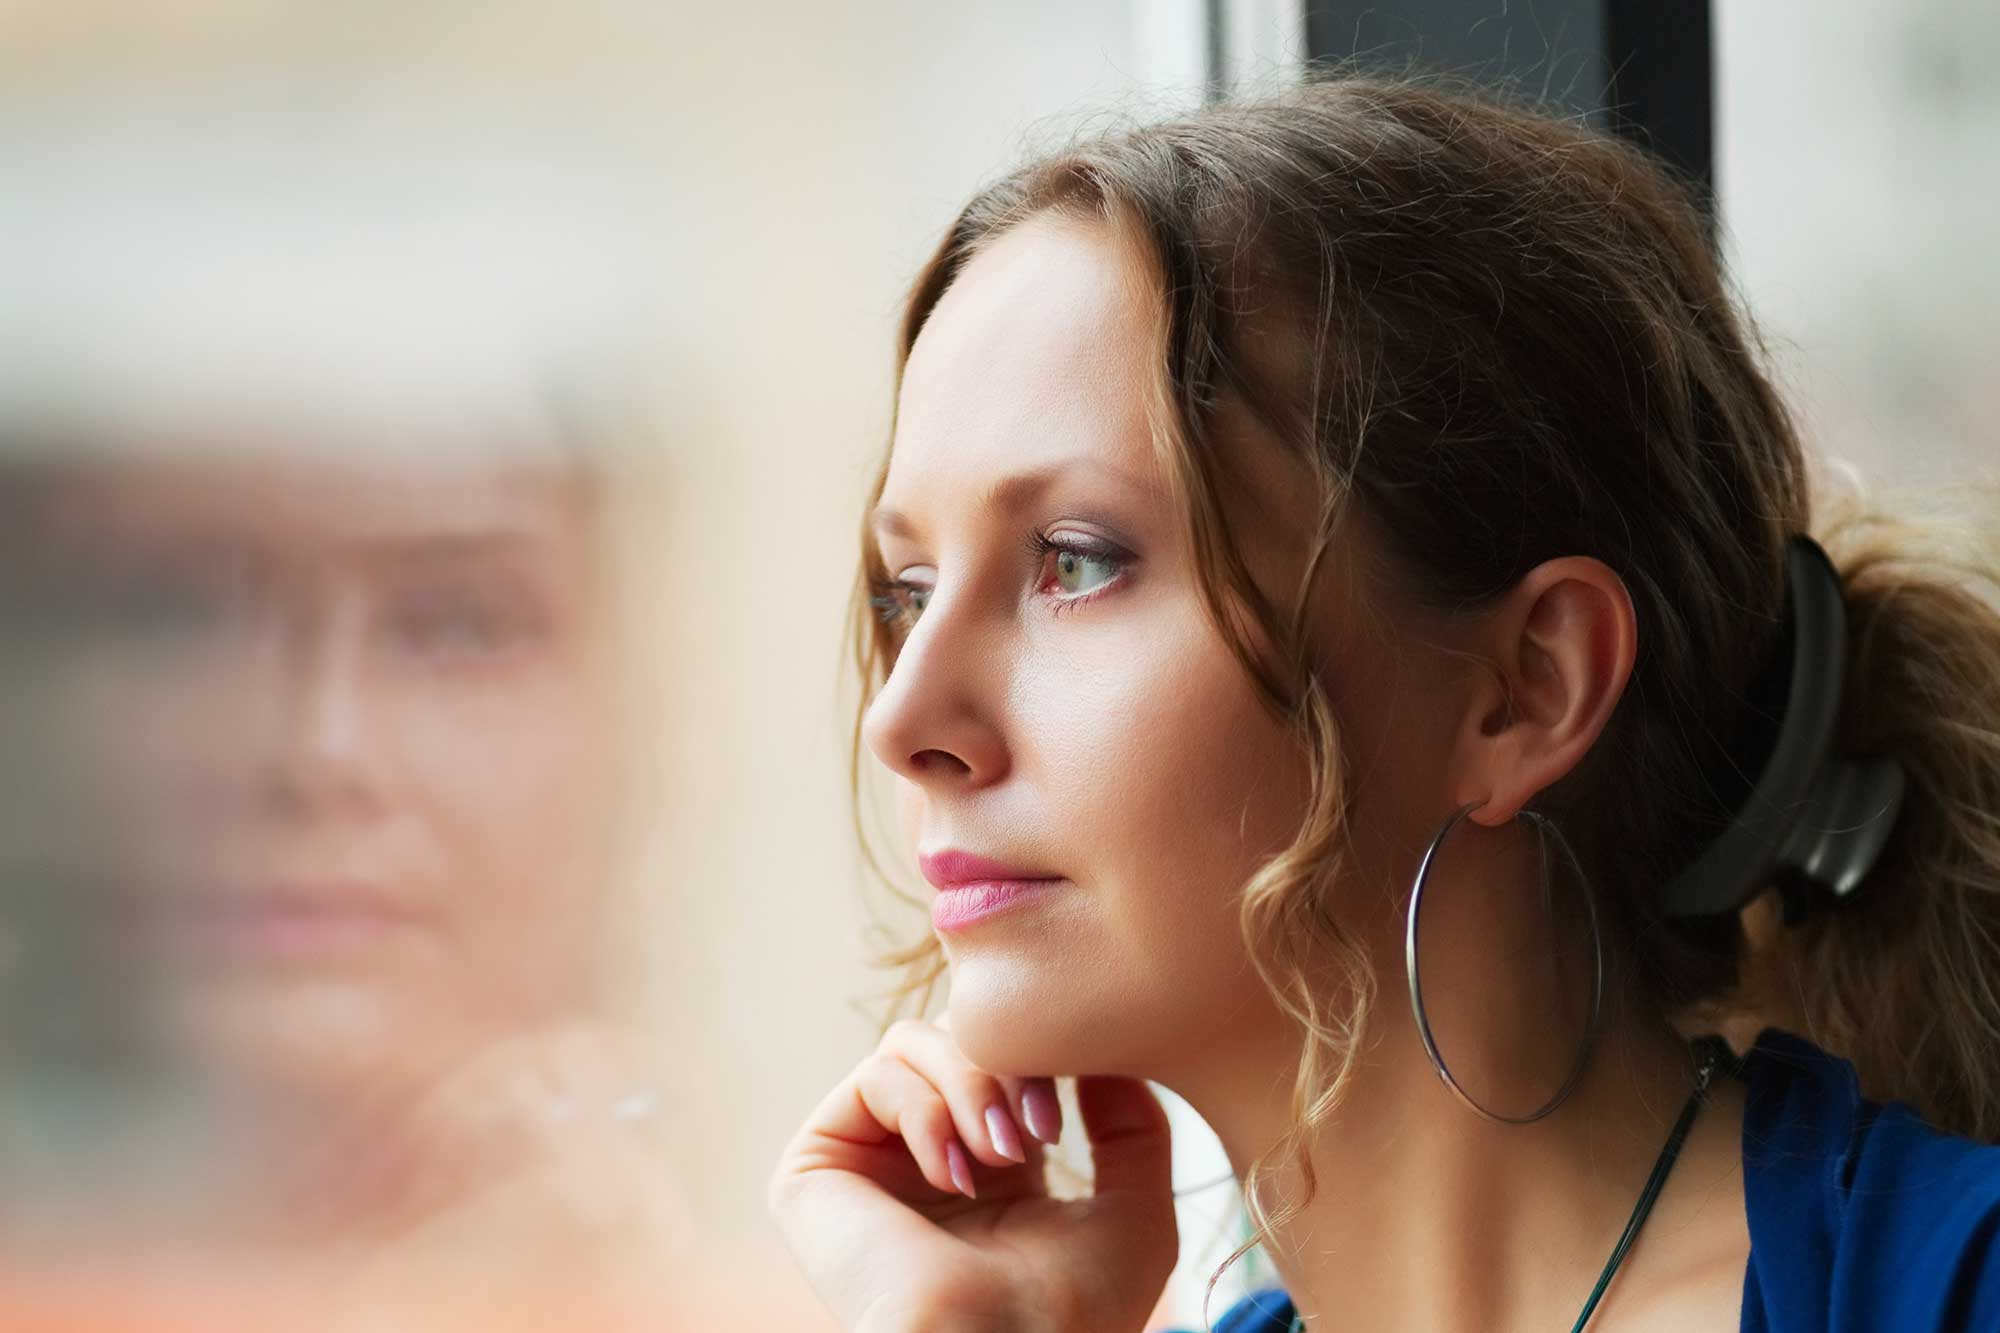 7 Things to Do to Stop Thinking about Him